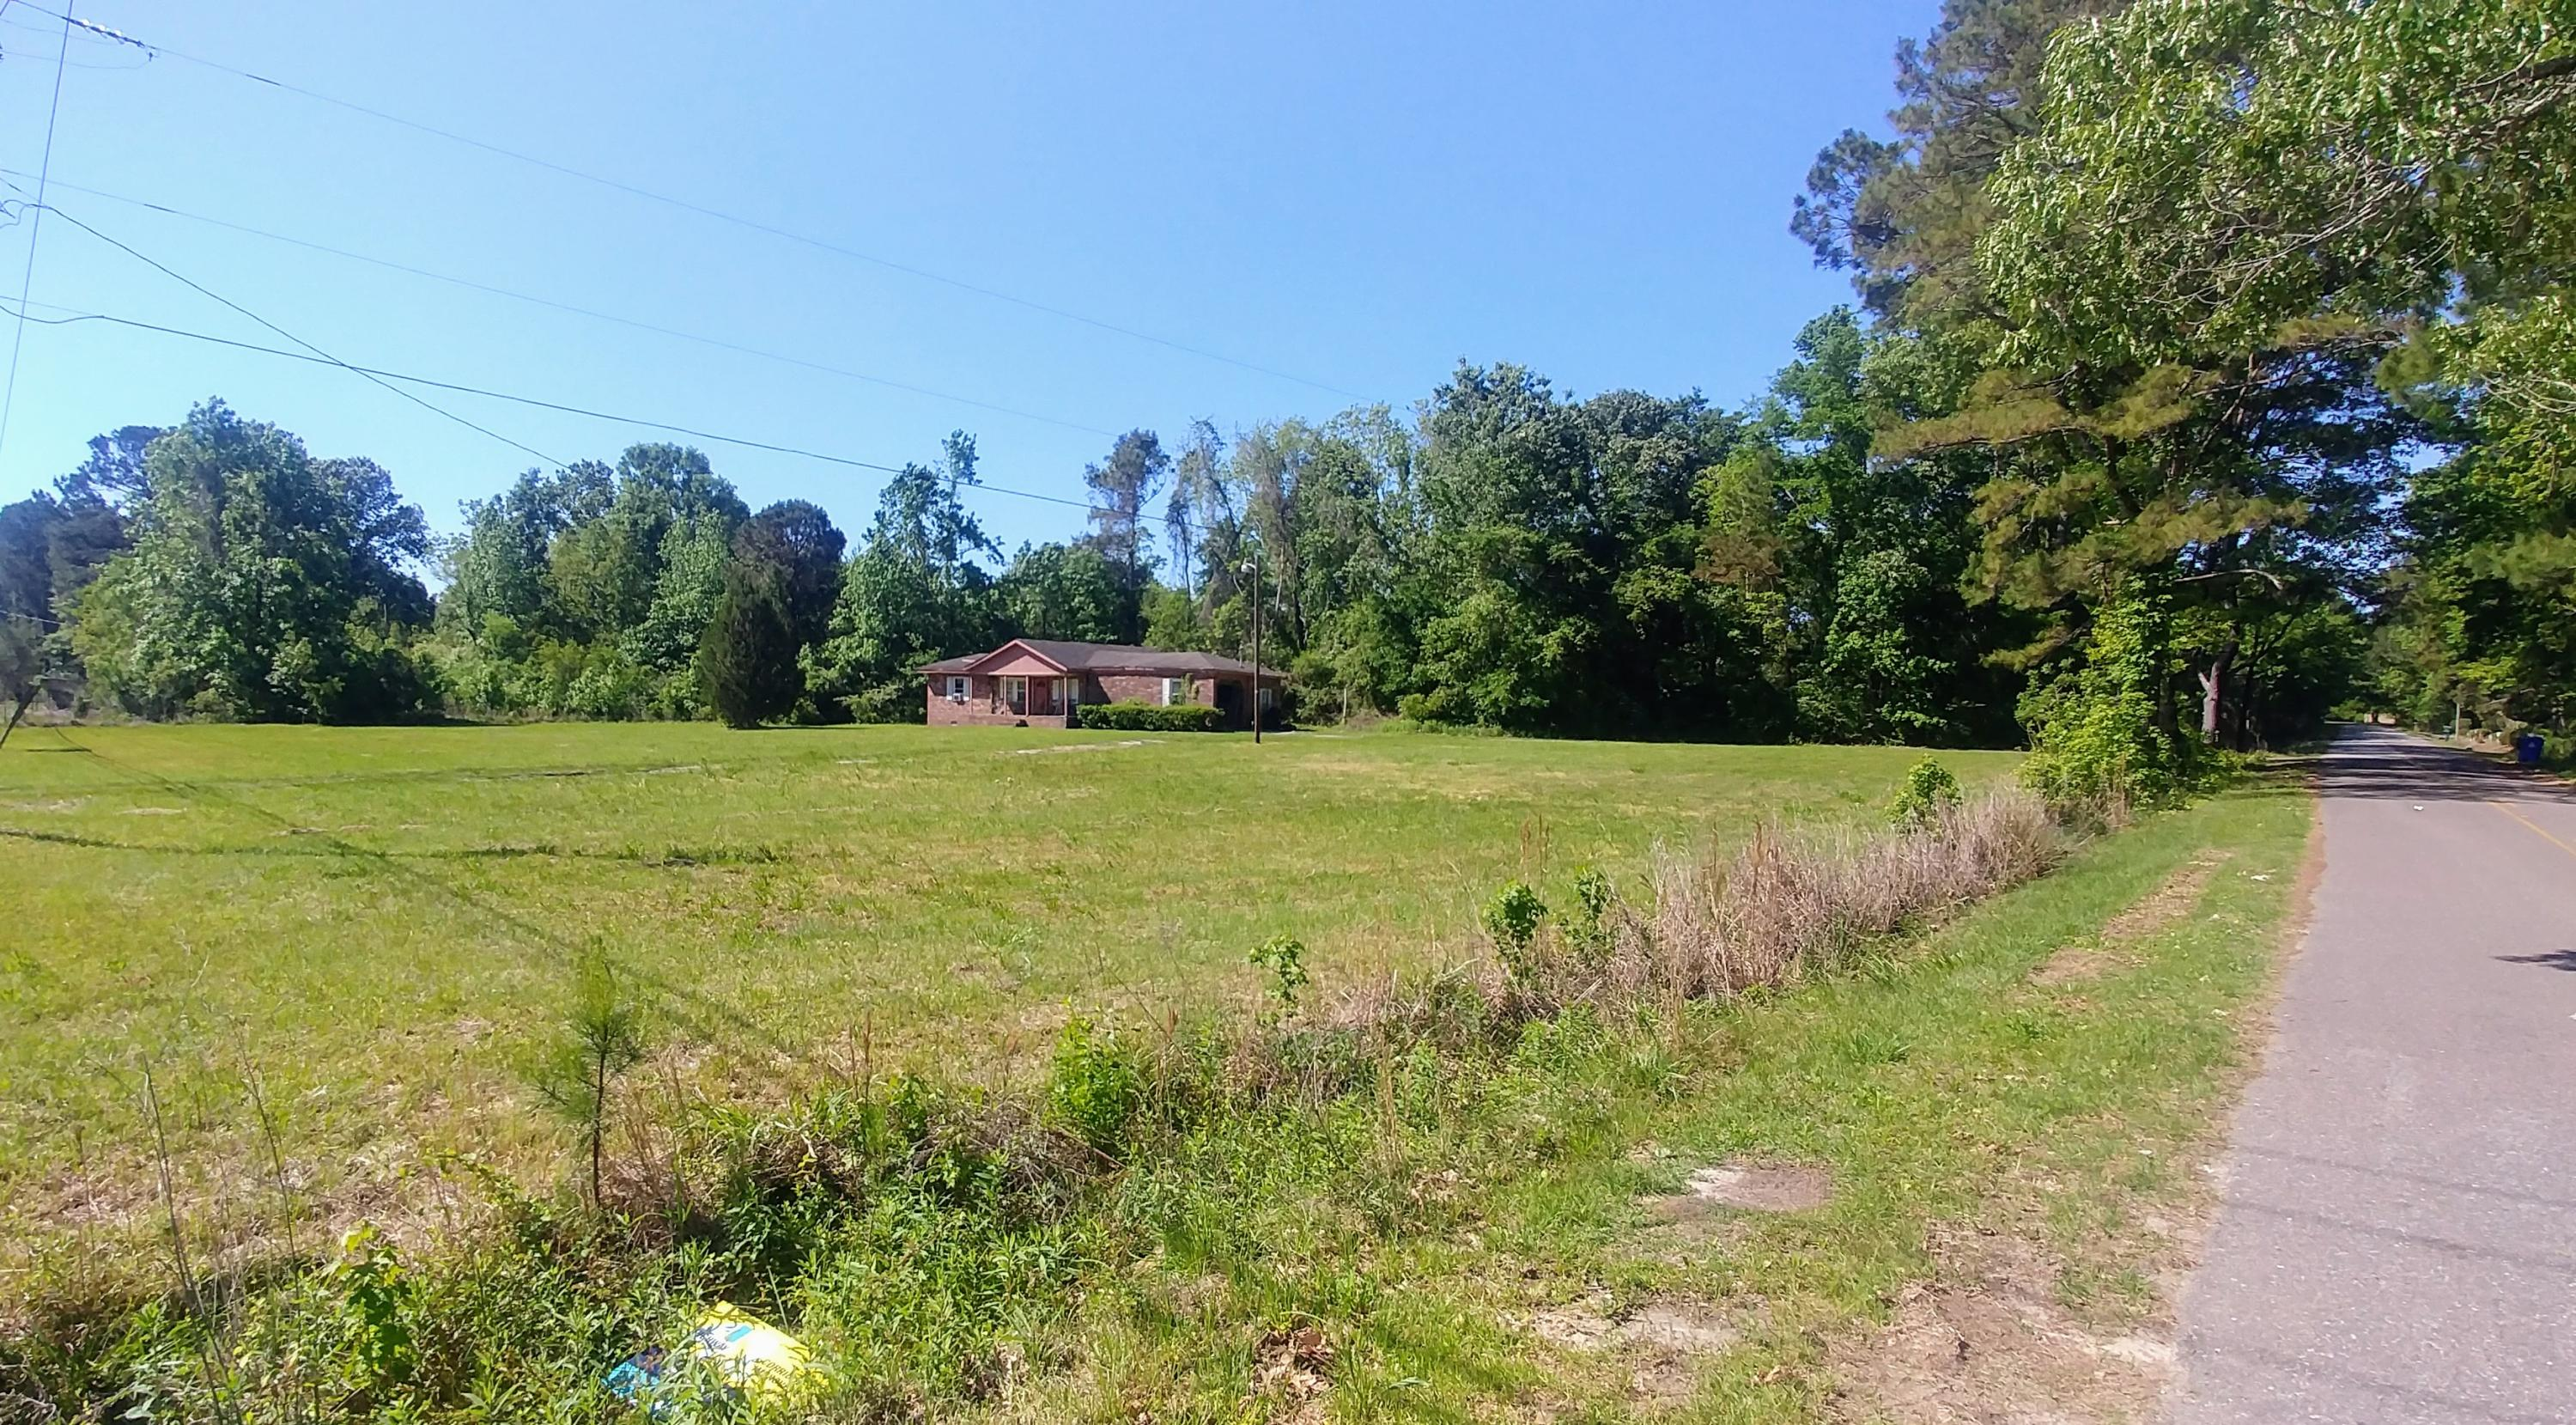 Photo of 1790 SC-41, Mt Pleasant, SC 29466